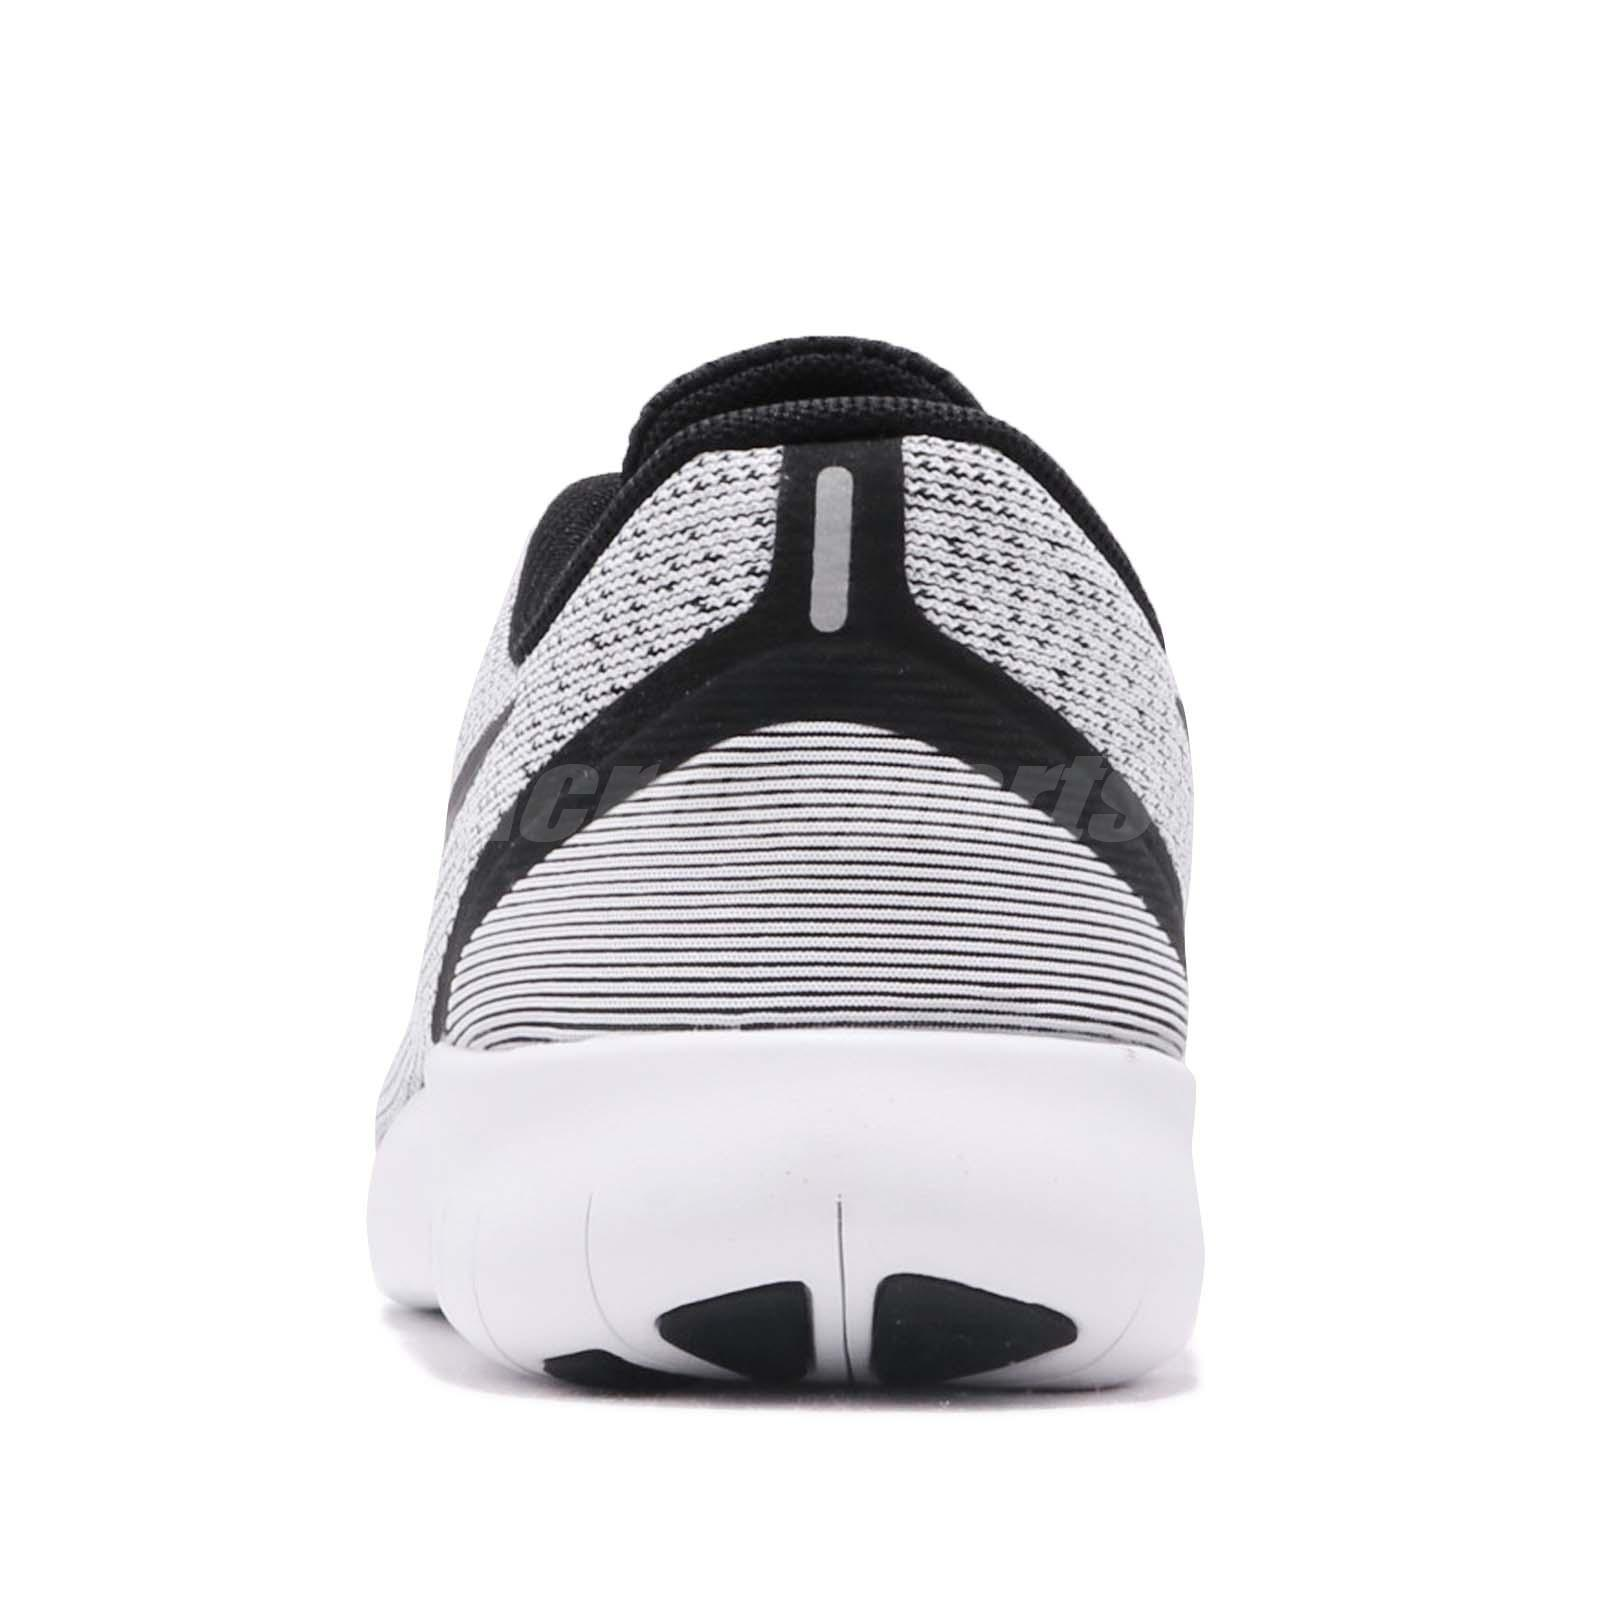 Unisex Shoes Nike Free Run Youth Size 5.5y Running Shoes Sneakers Black & White 833989-100 Clothing, Shoes & Accessories